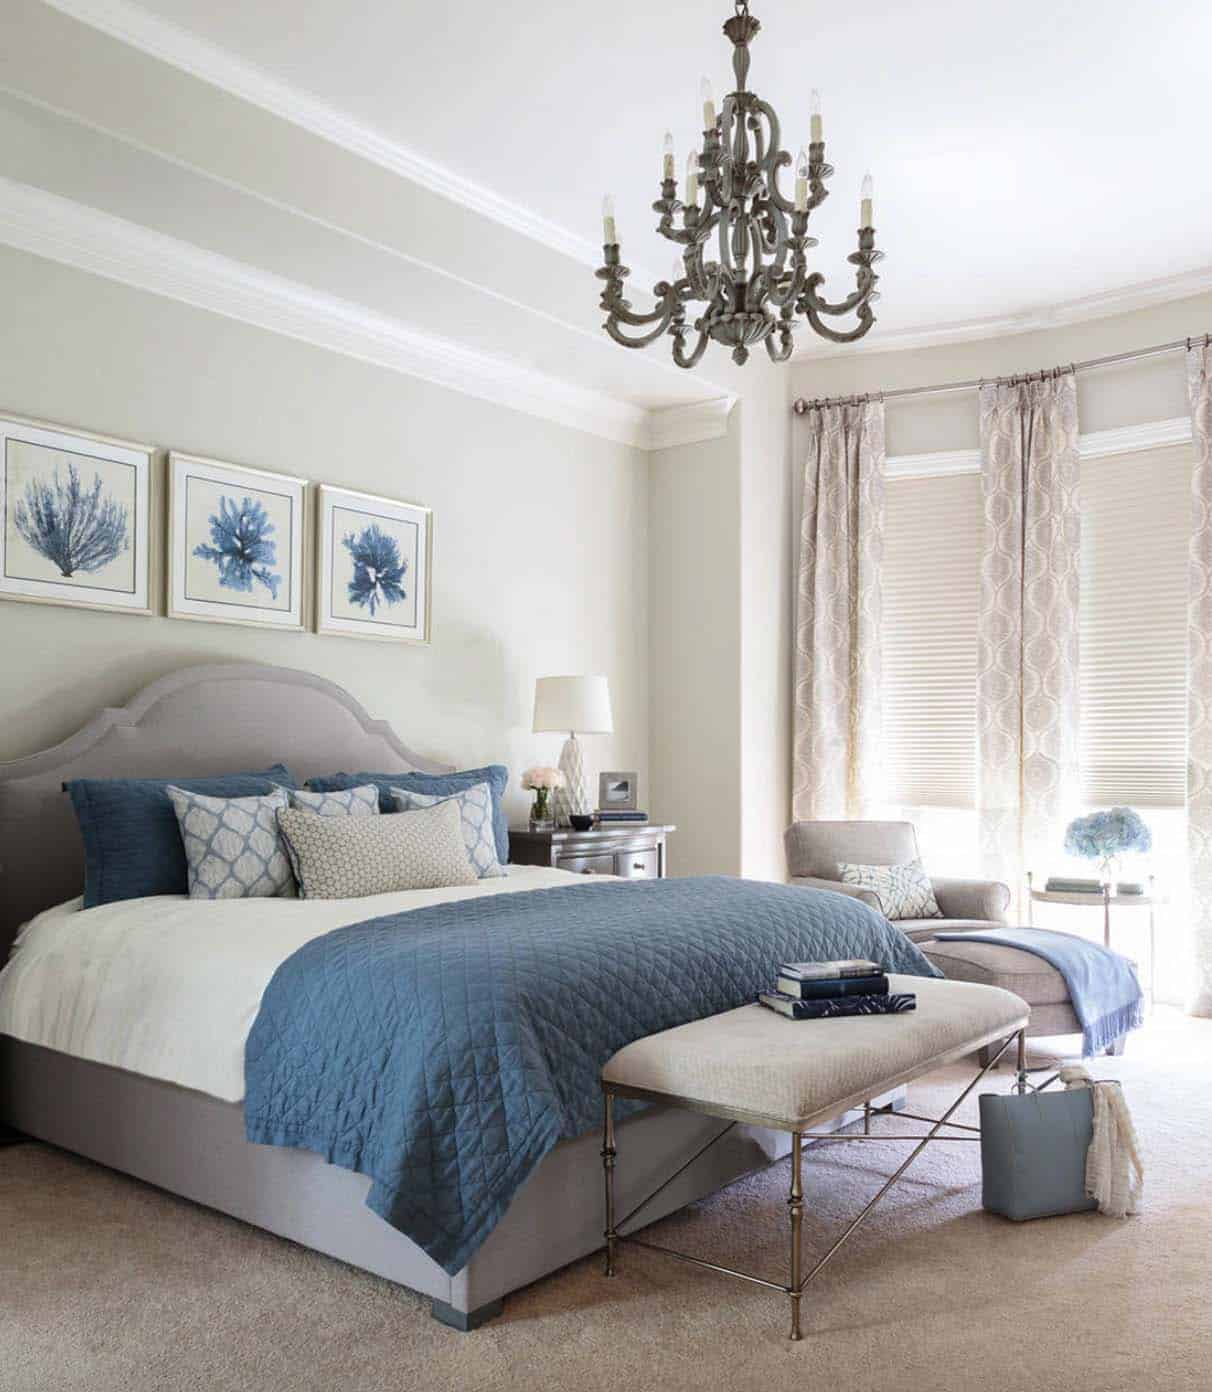 Grey Master Bedroom: 20+ Serene And Elegant Master Bedroom Decorating Ideas